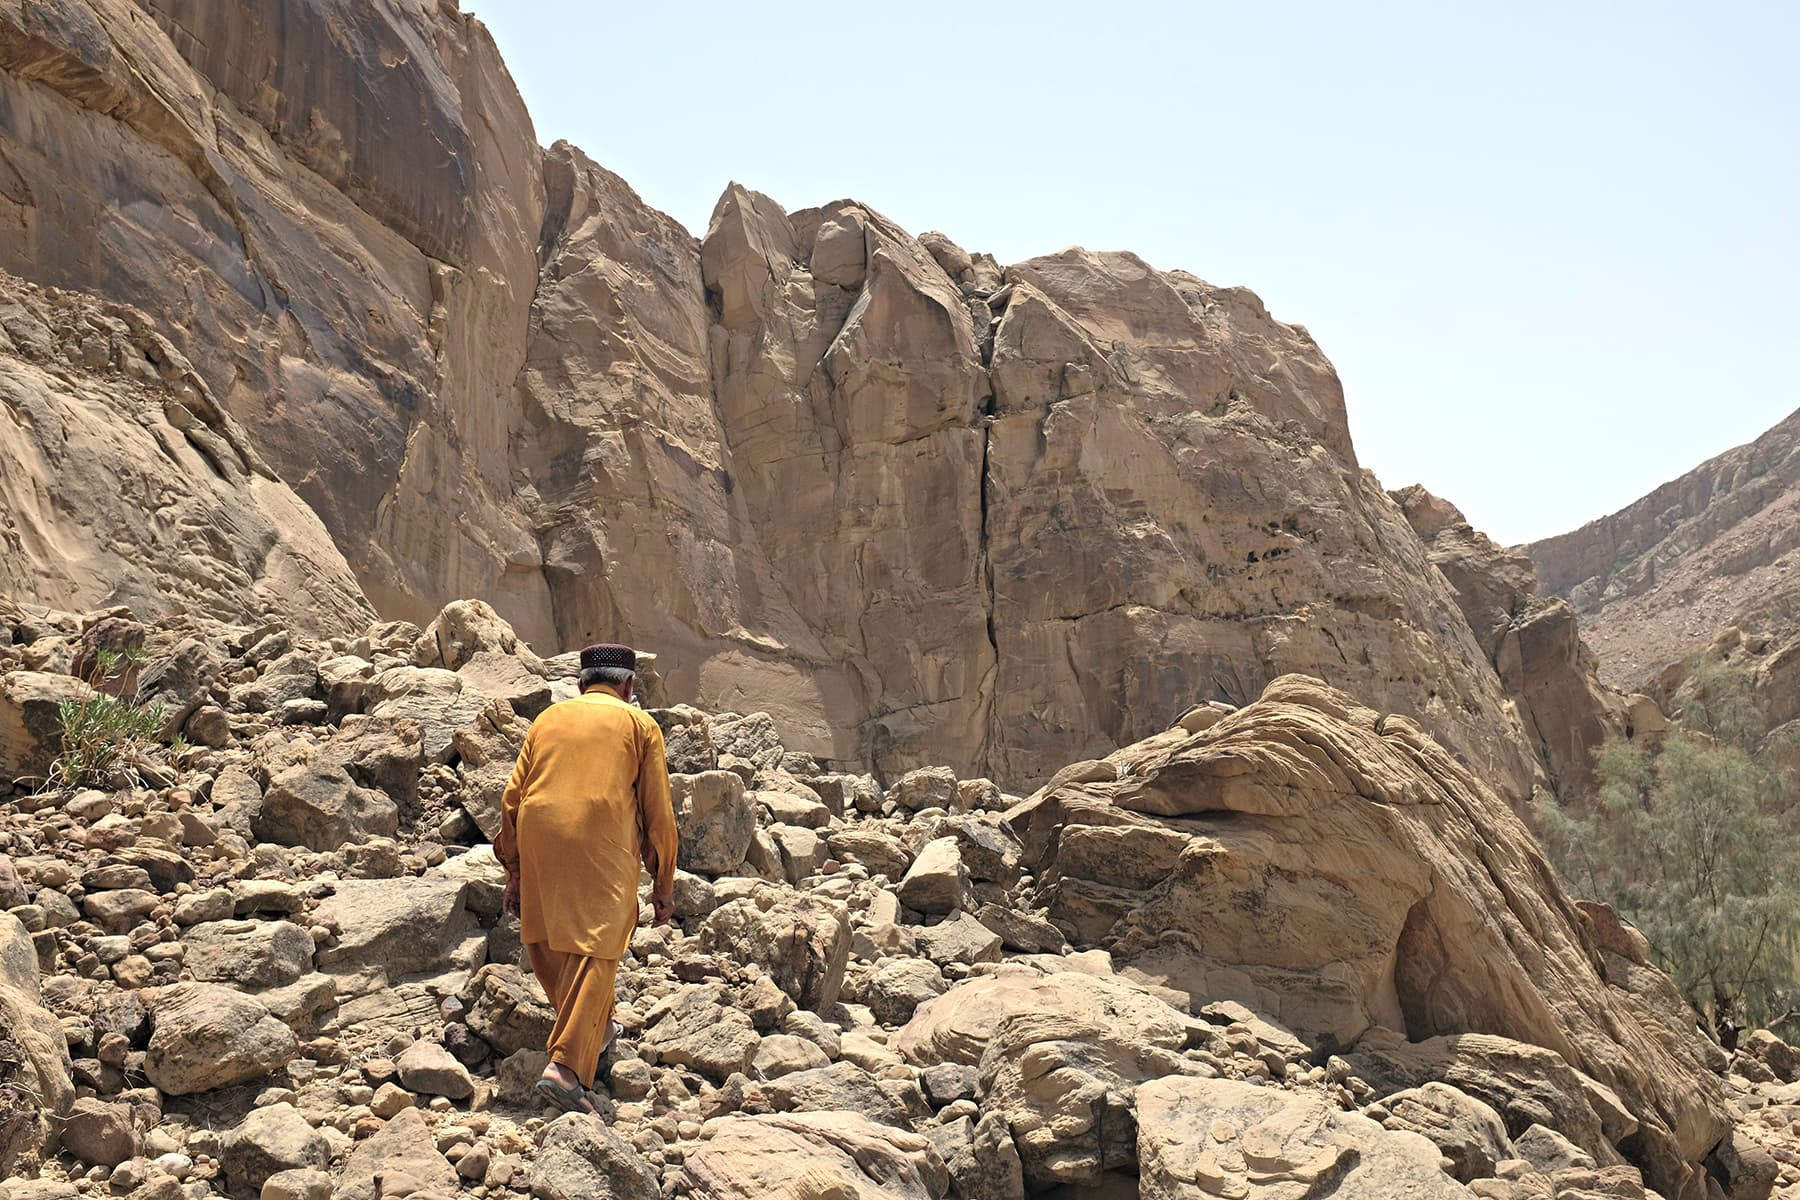 Miskeen walks us to climb other rocks where prominent chiti can be found.